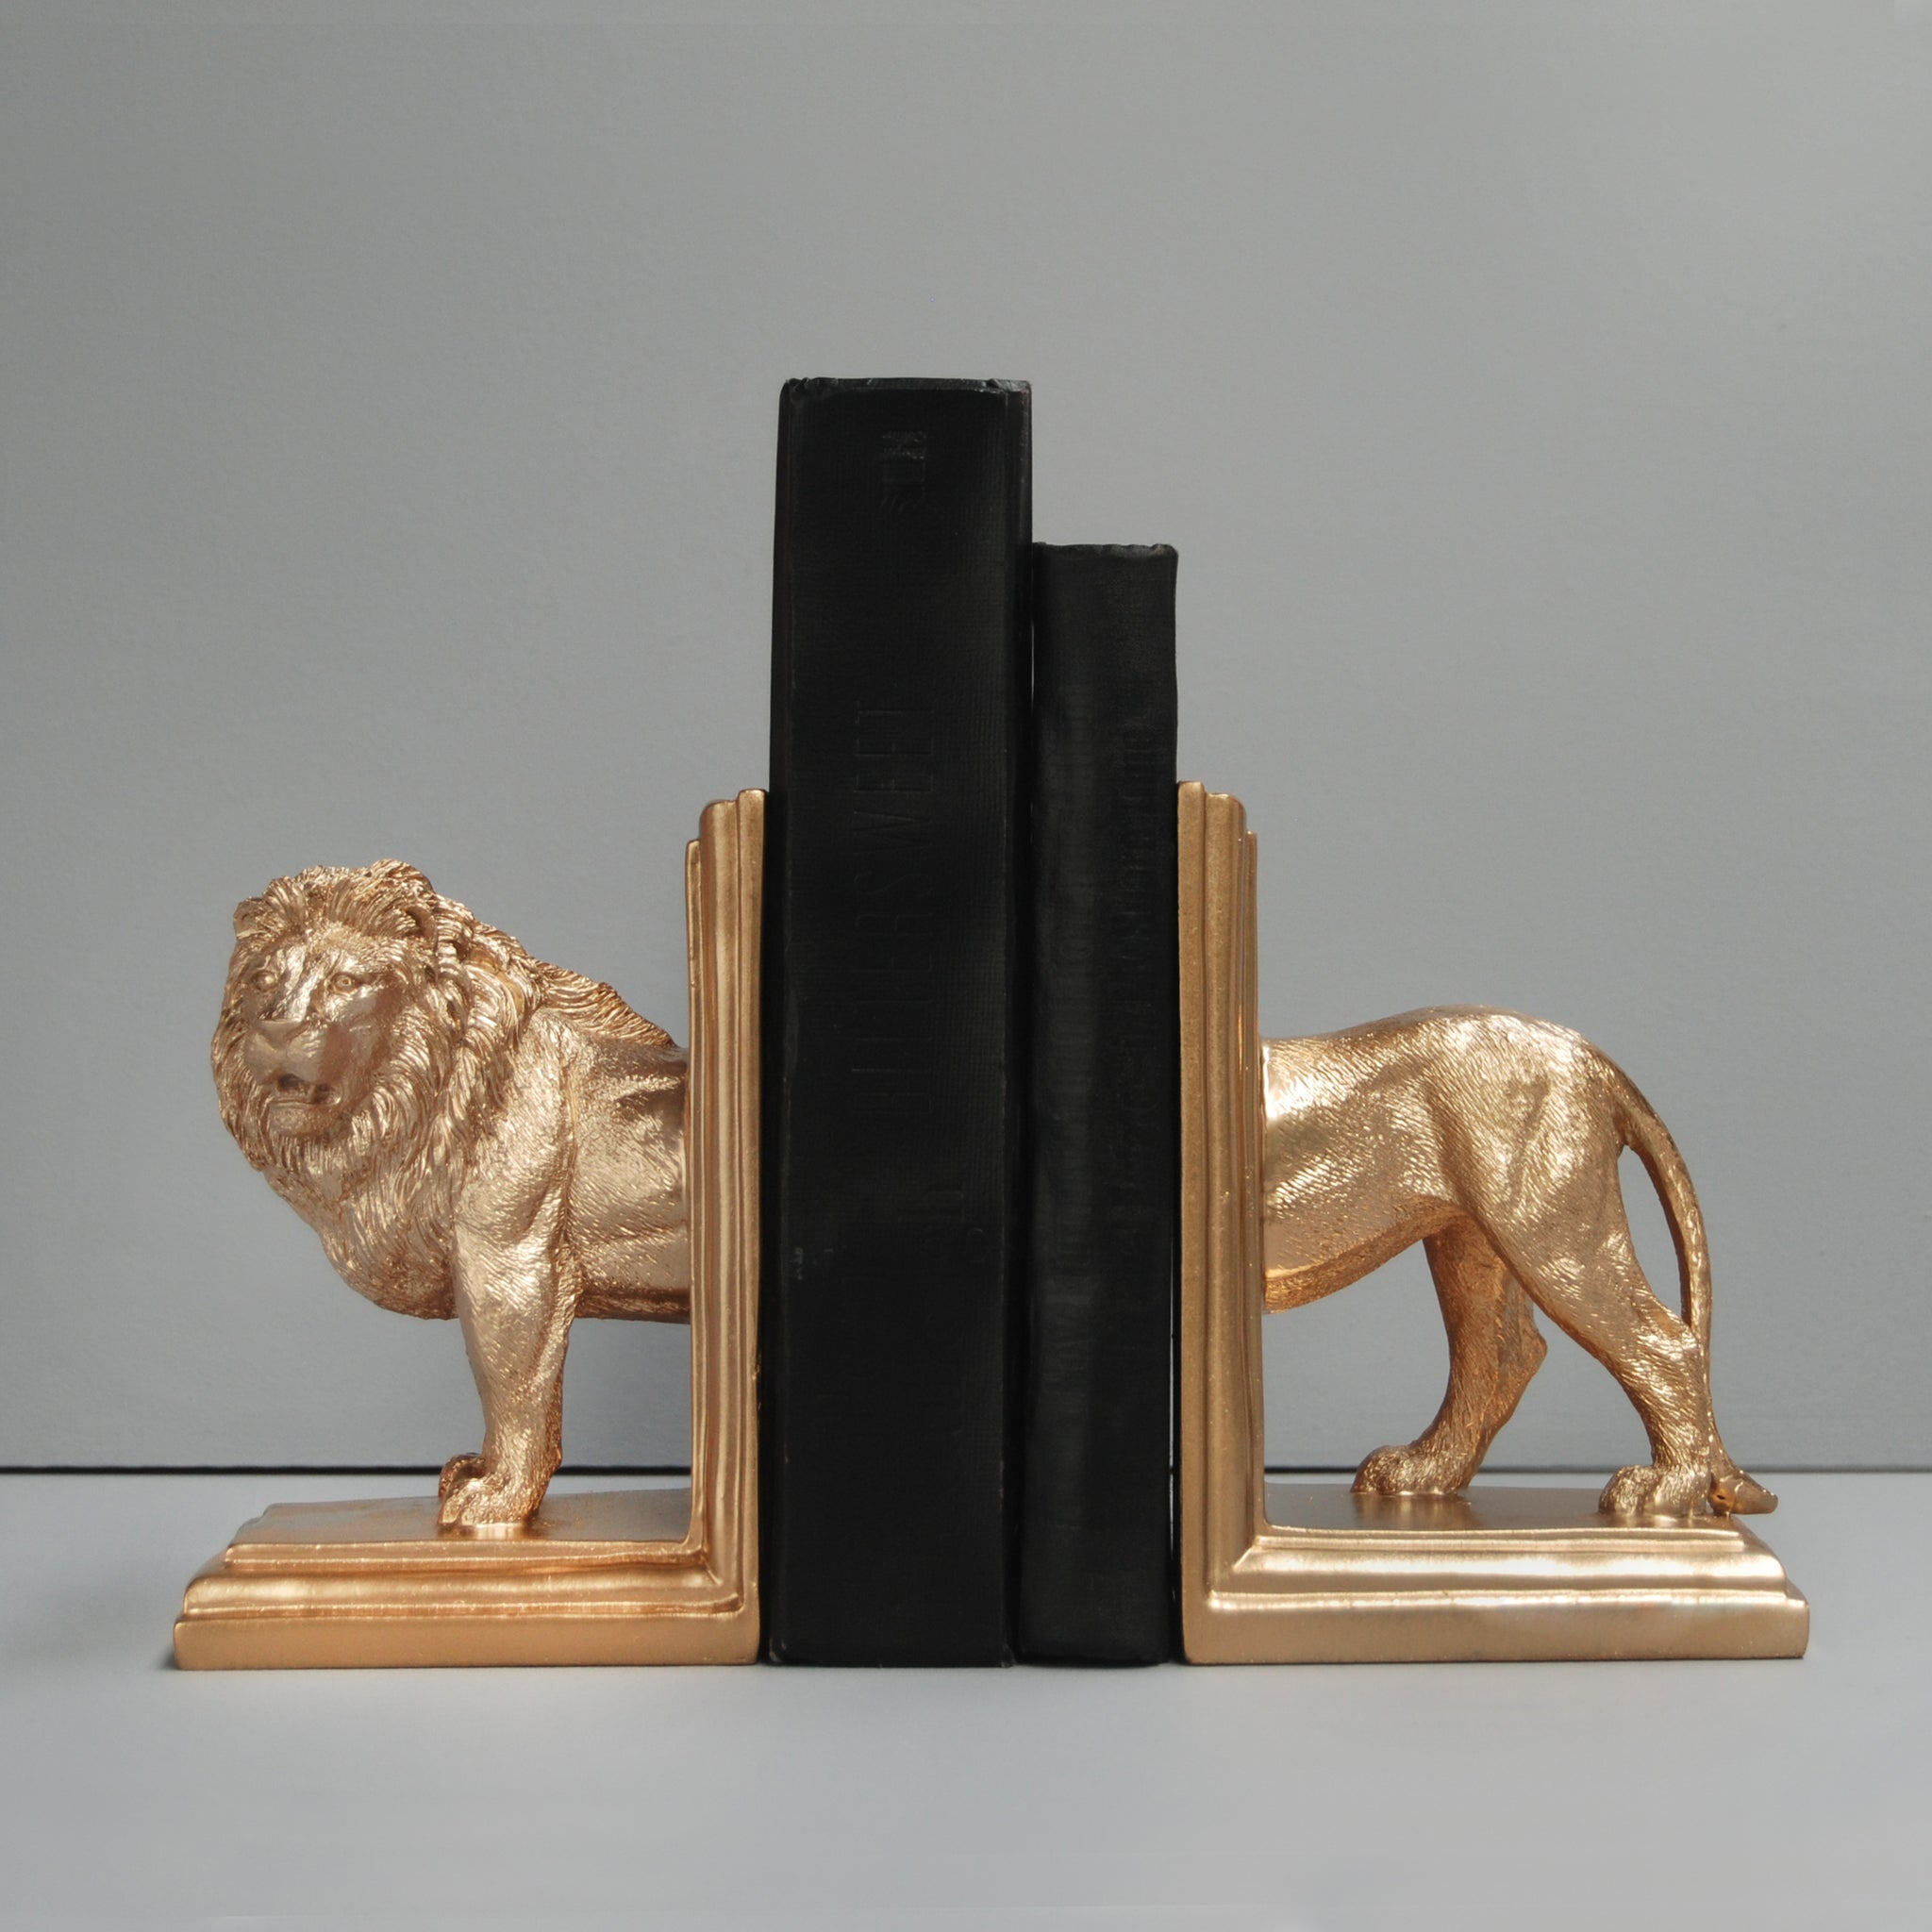 gold lion resin bookends with black books australian designer white moose book lovers lion lovers gift idea unique birthday housewarming